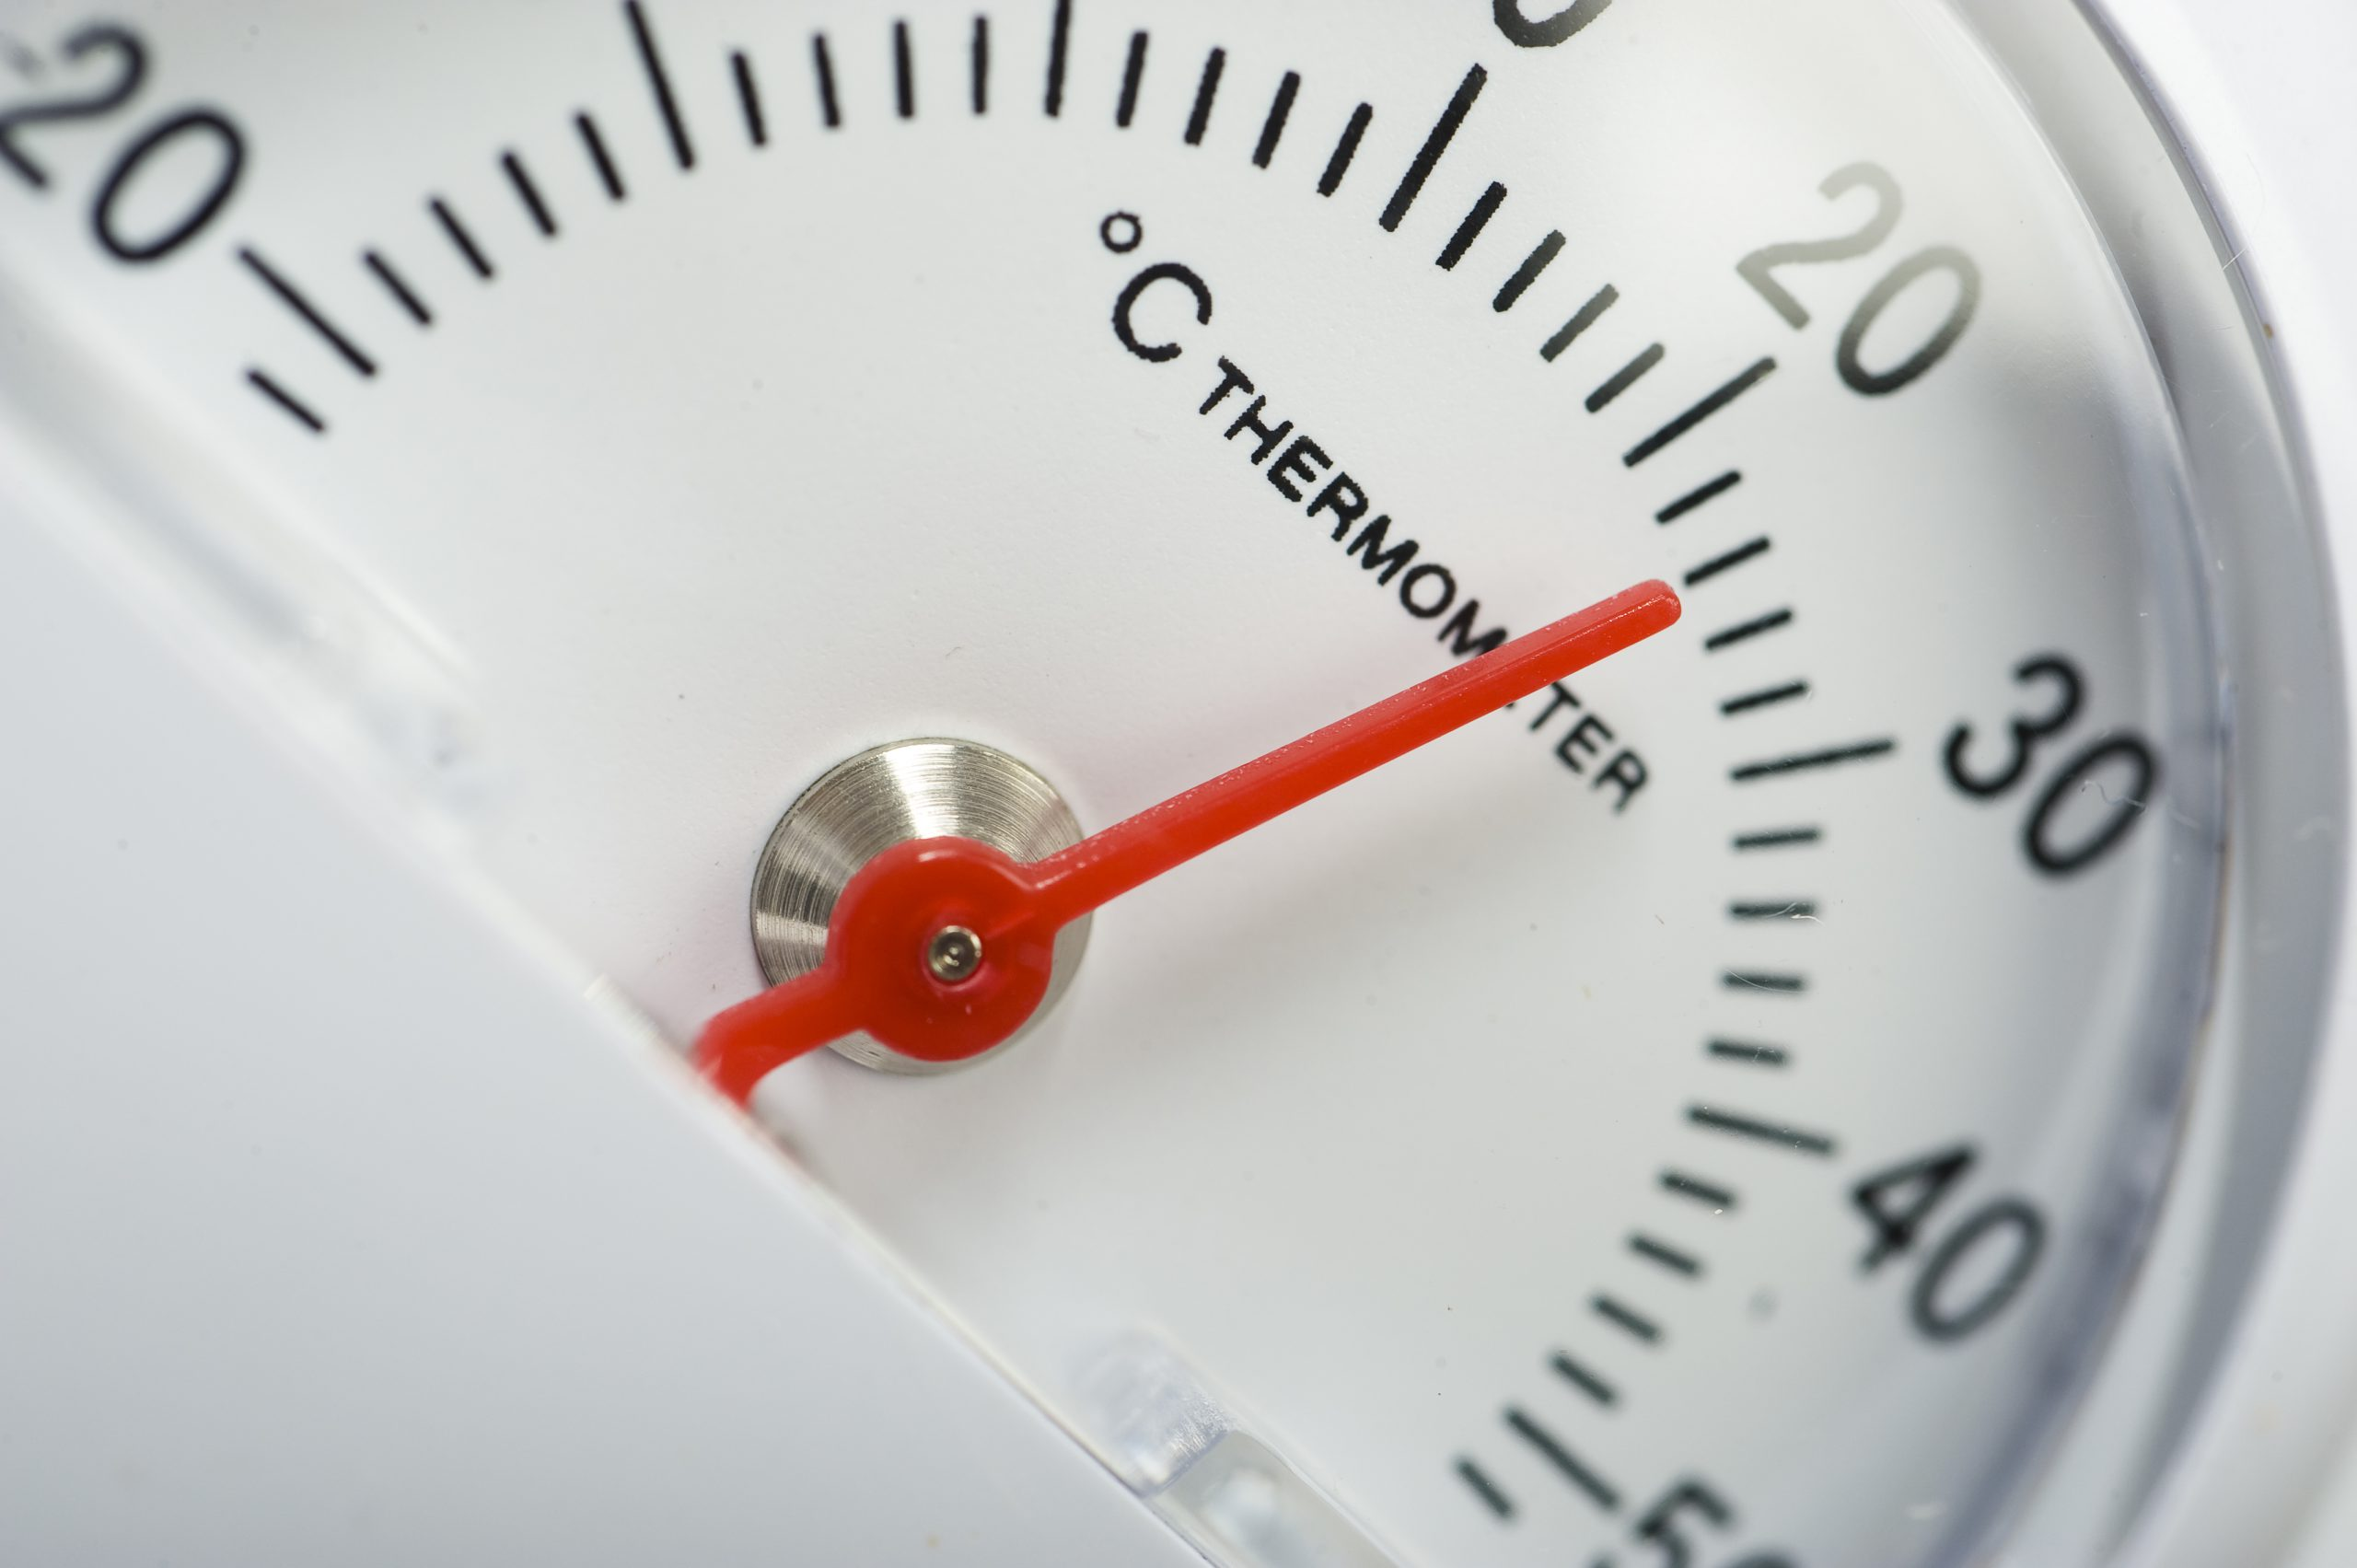 an image of a thermometer